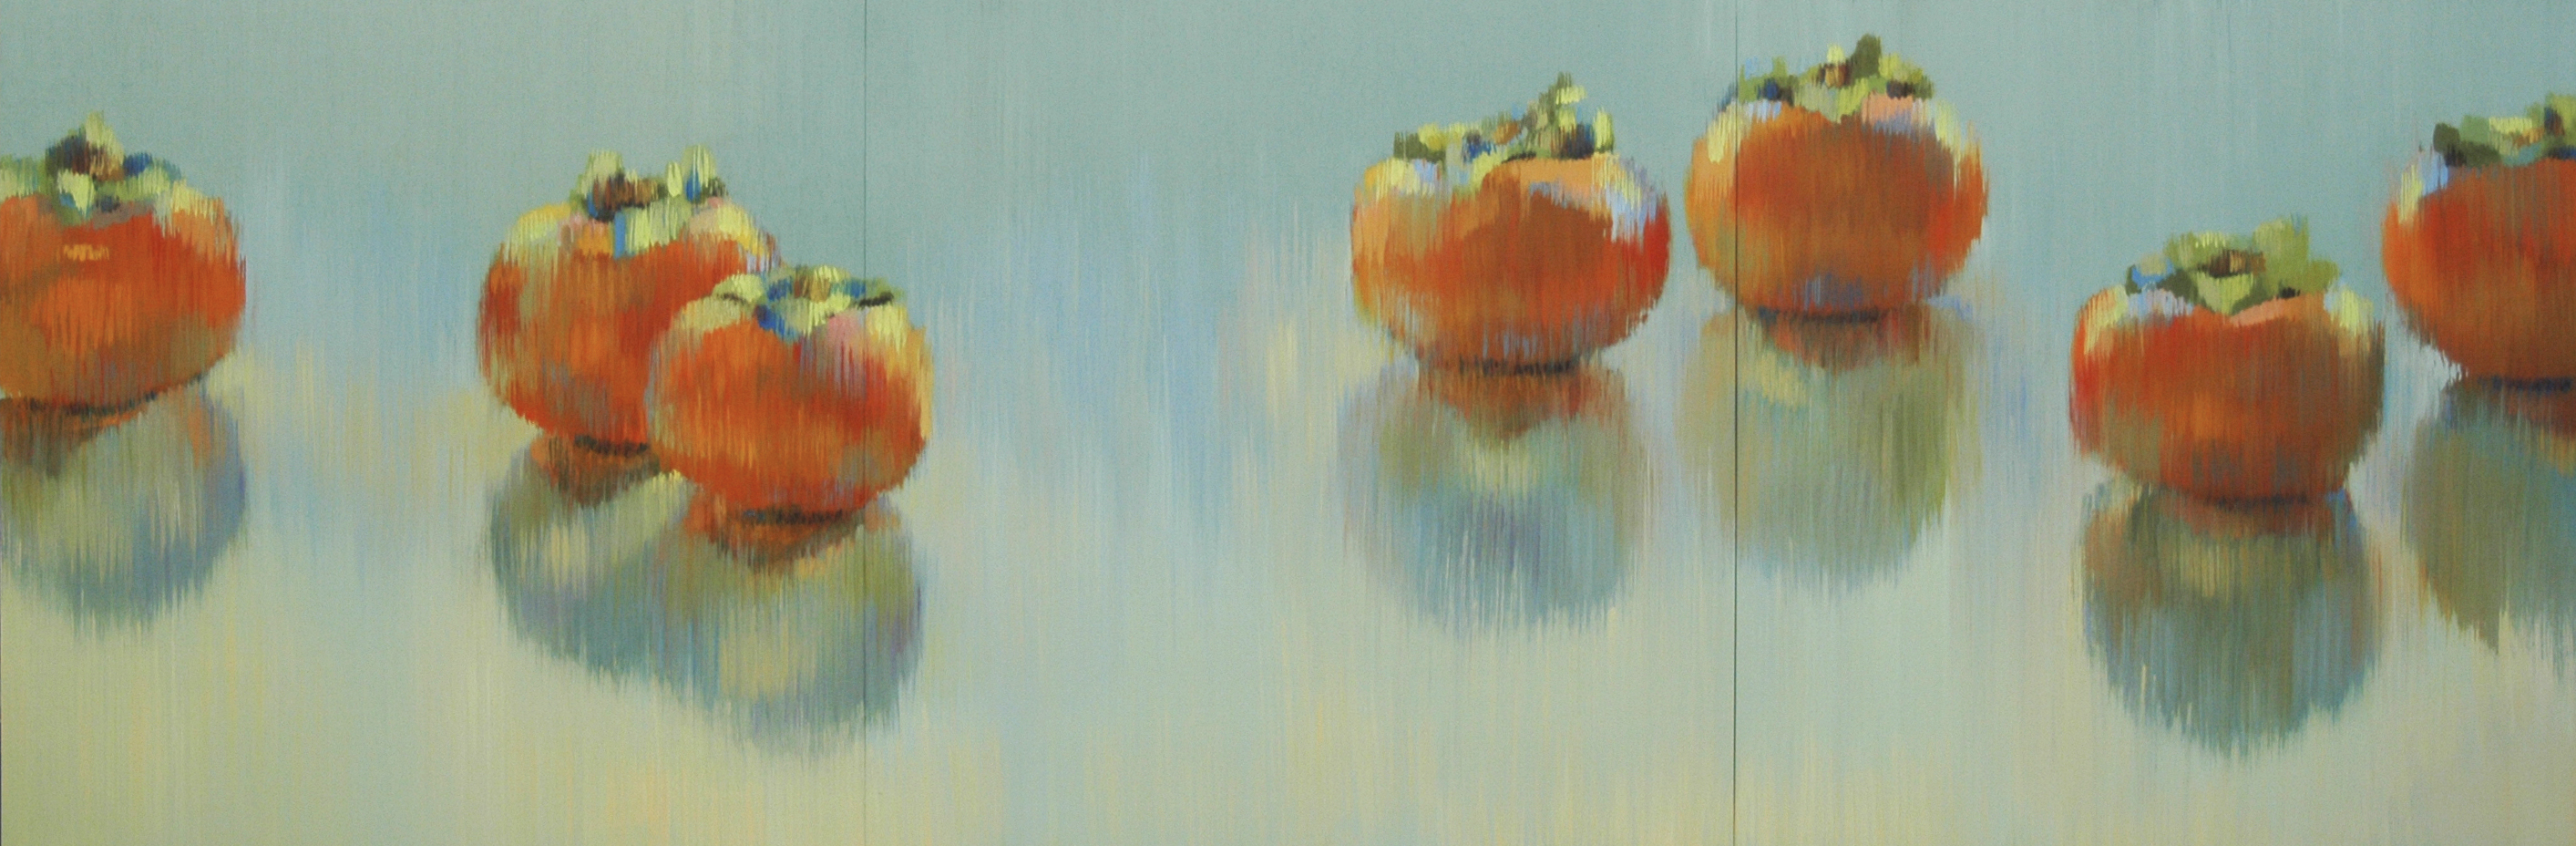 Persimmons 72x24